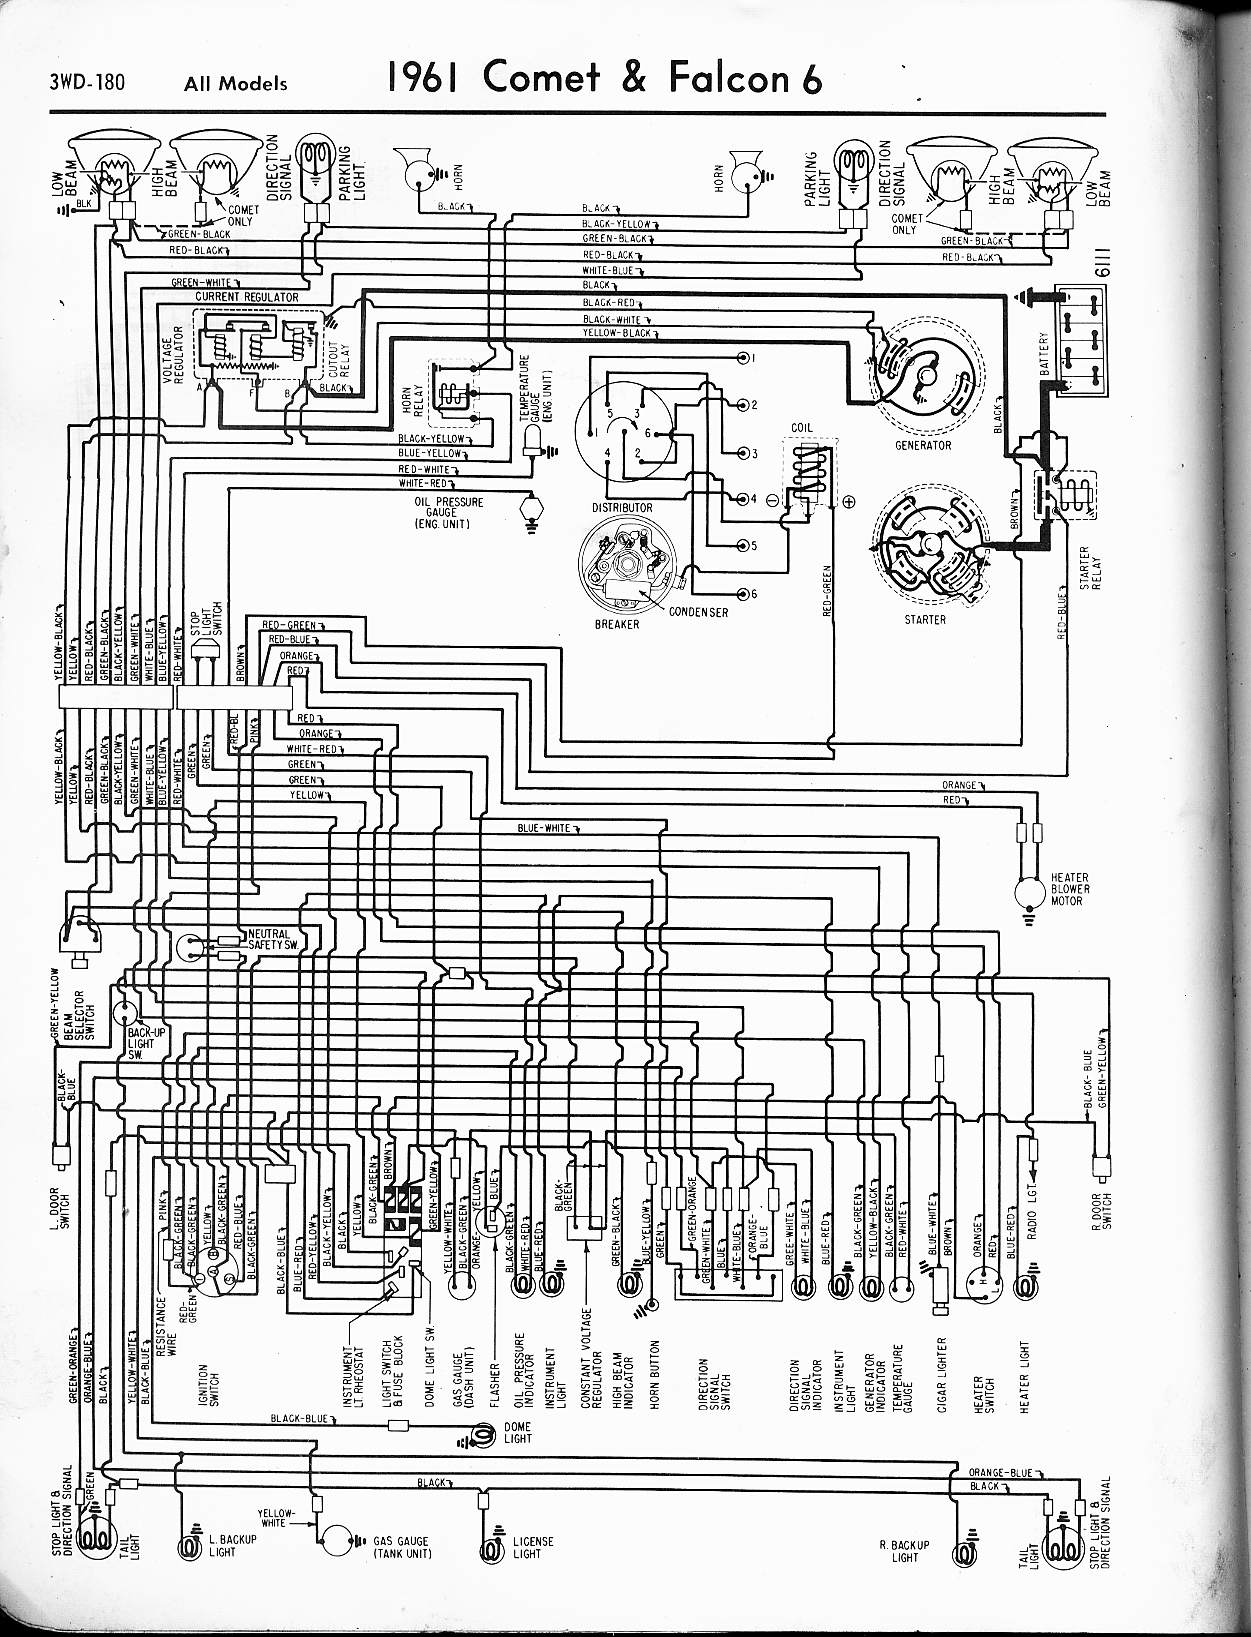 MWire5765 180 ba falcon wiring diagram jon boat wiring diagram \u2022 free wiring ba falcon wiring diagram free download at nearapp.co